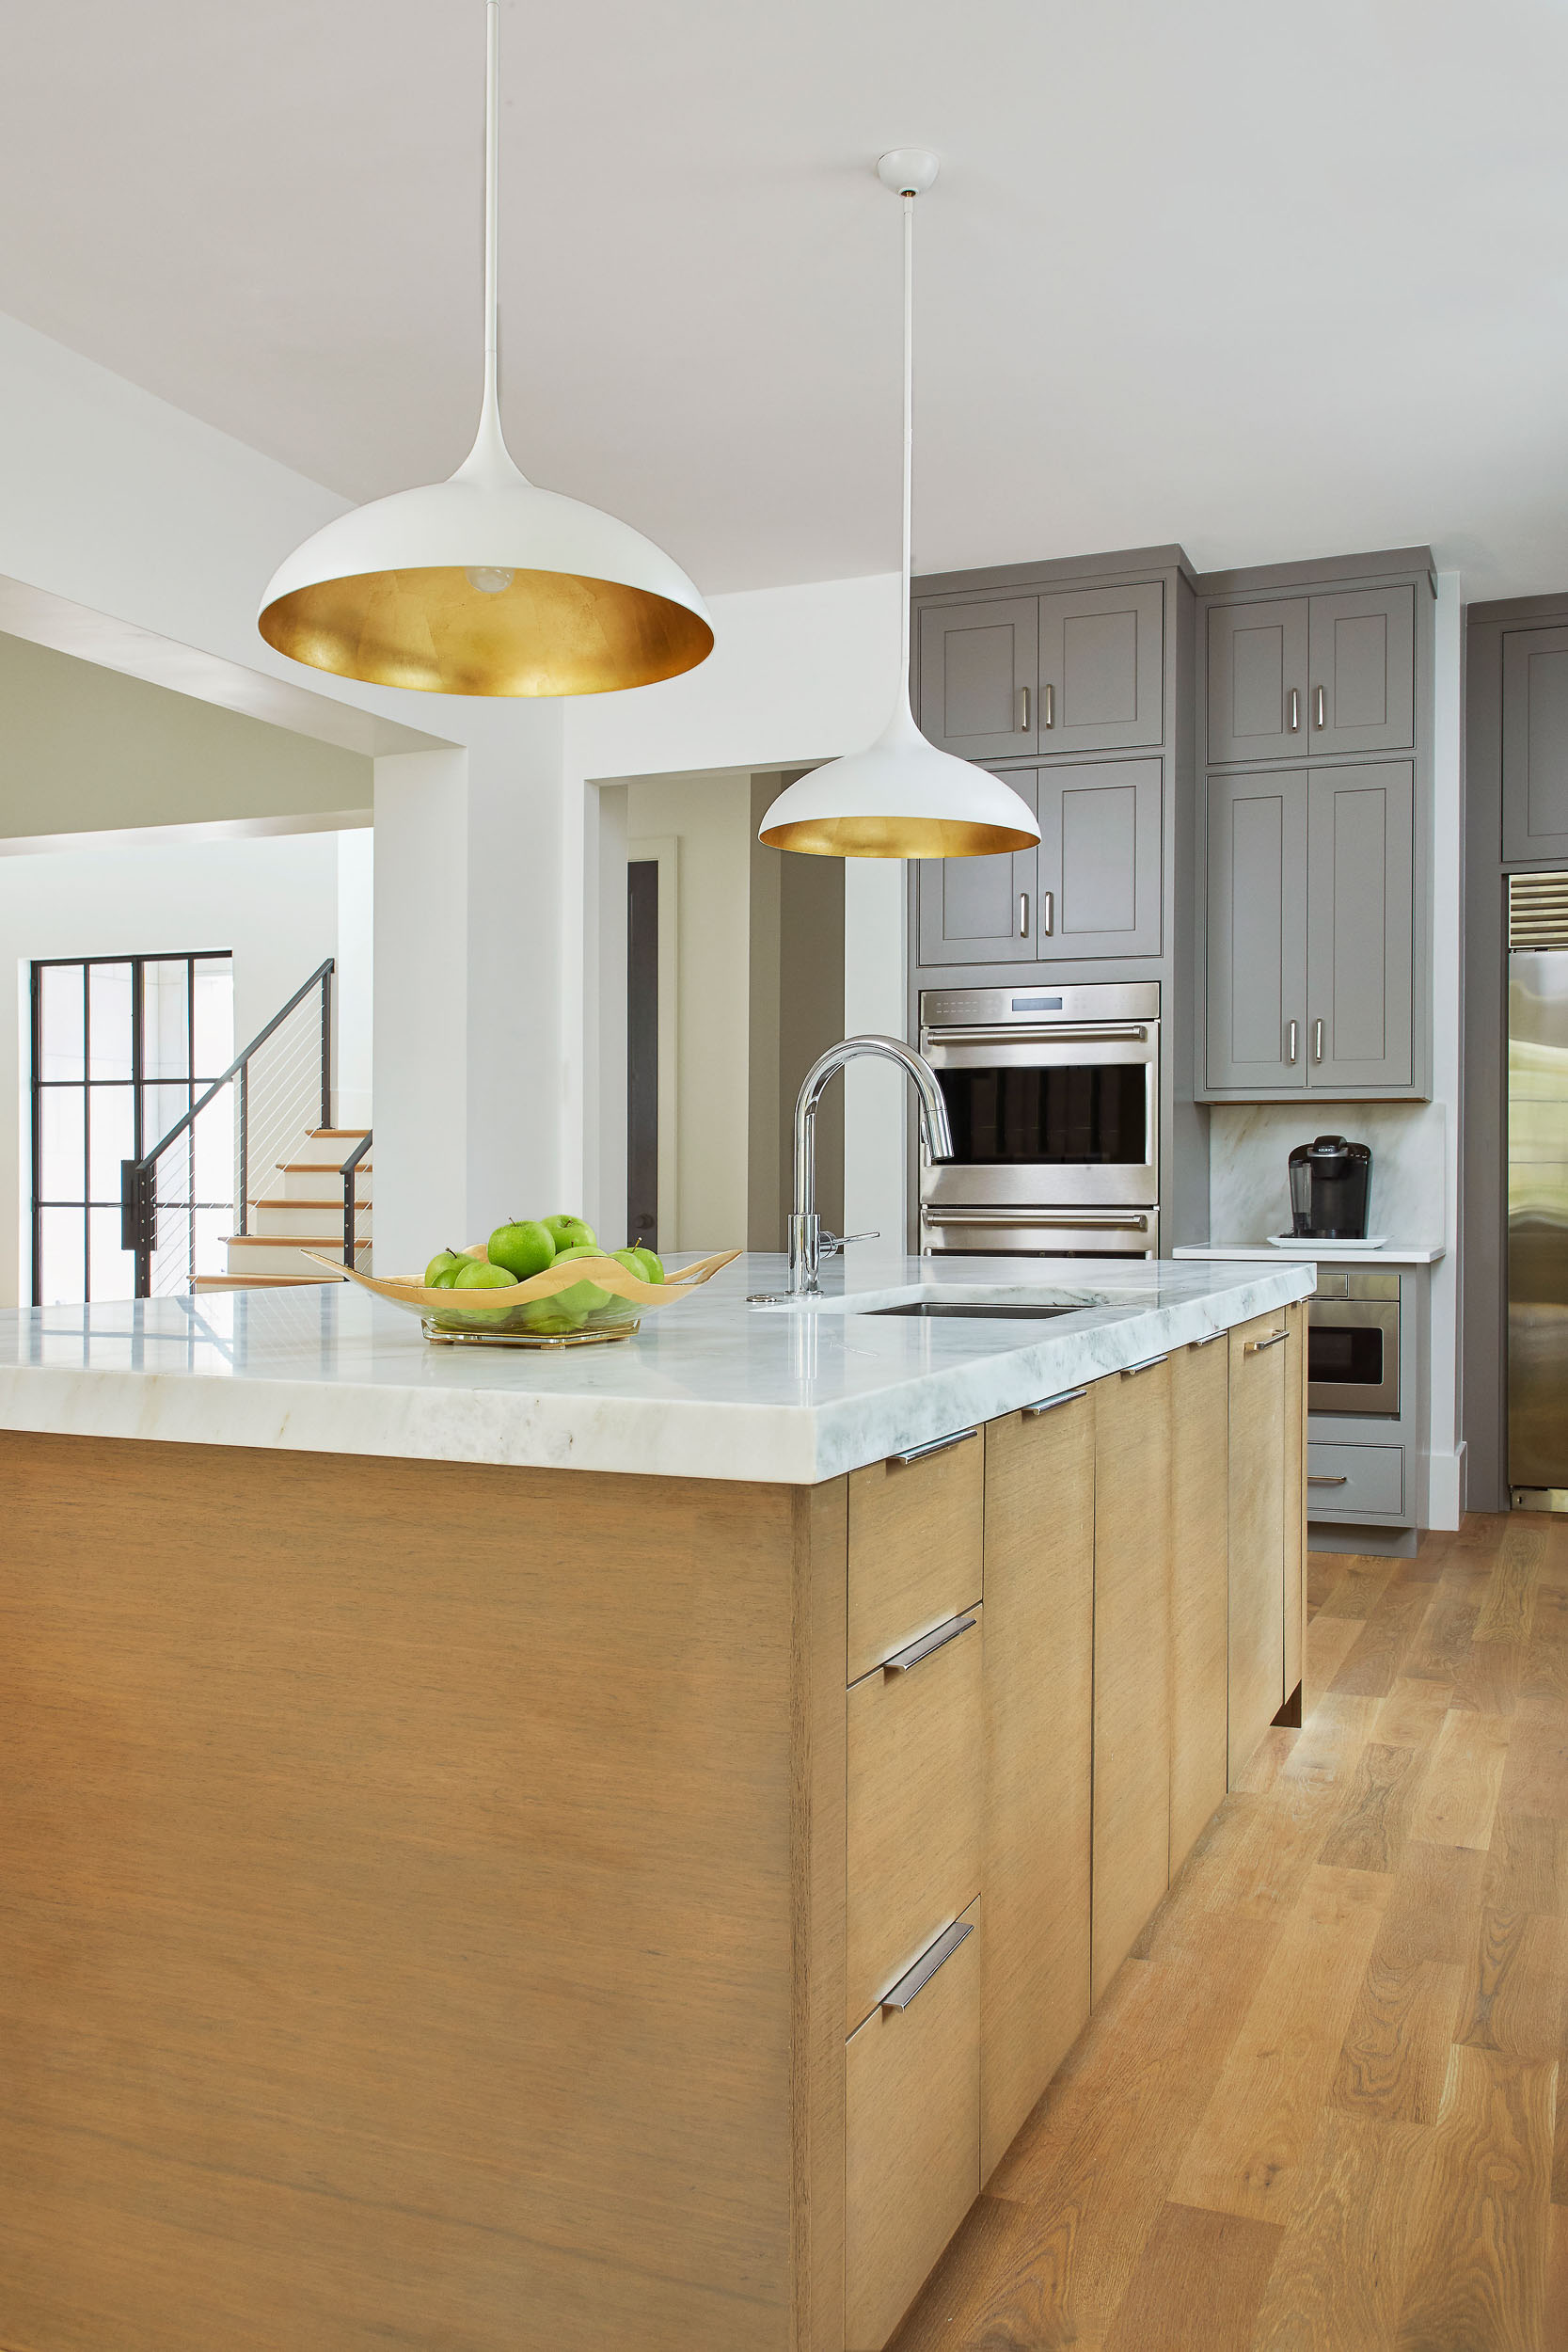 Tab Pull Cabinet Hardware By Top Knobs in Polished Nickel